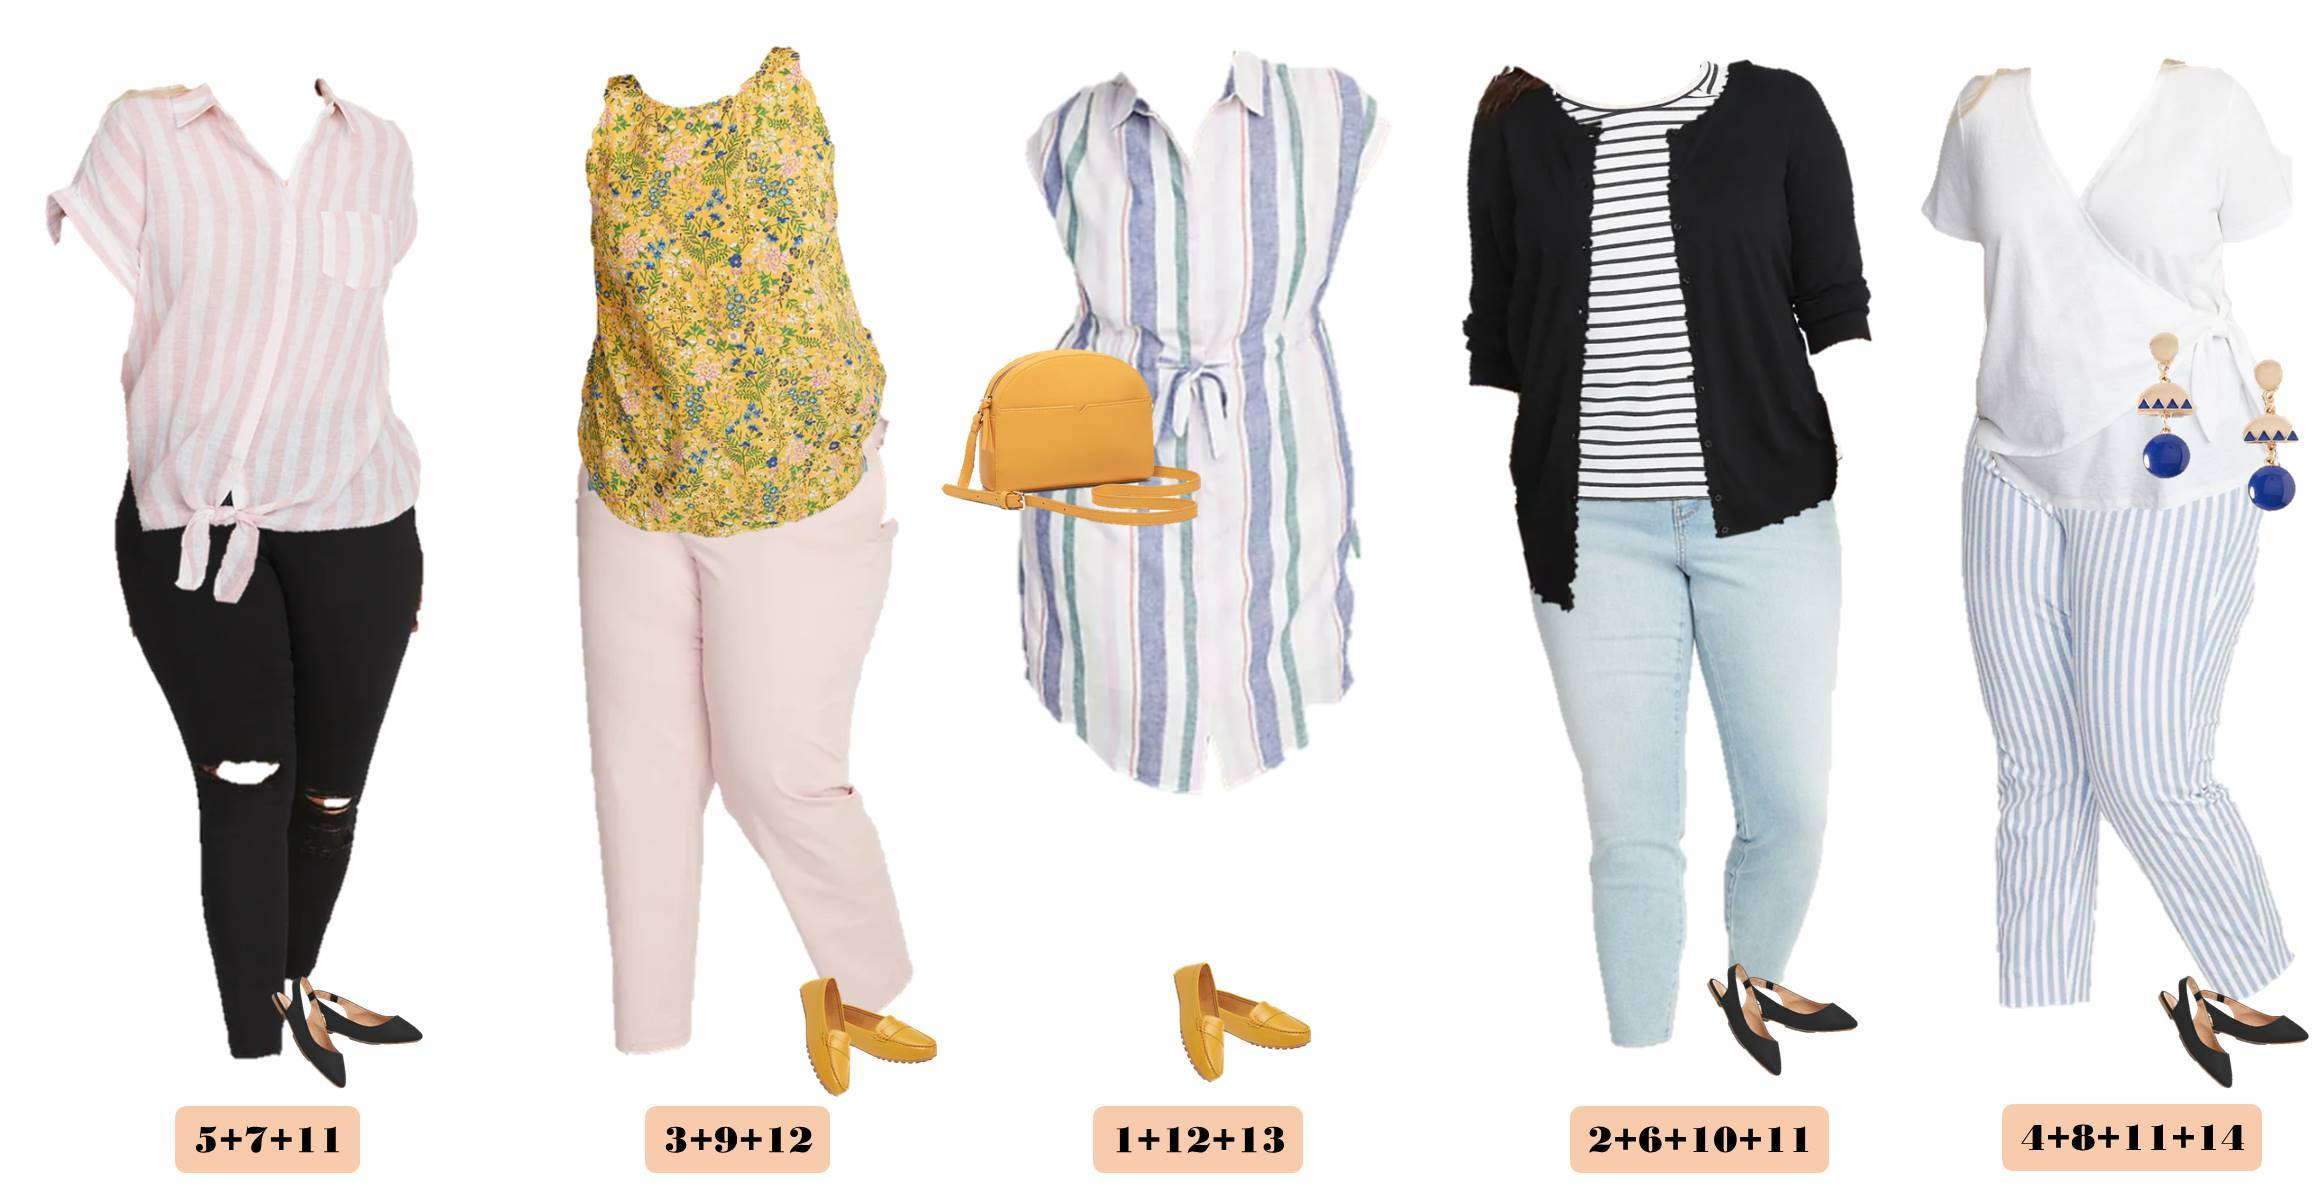 plus size capsule wardrobe outfits